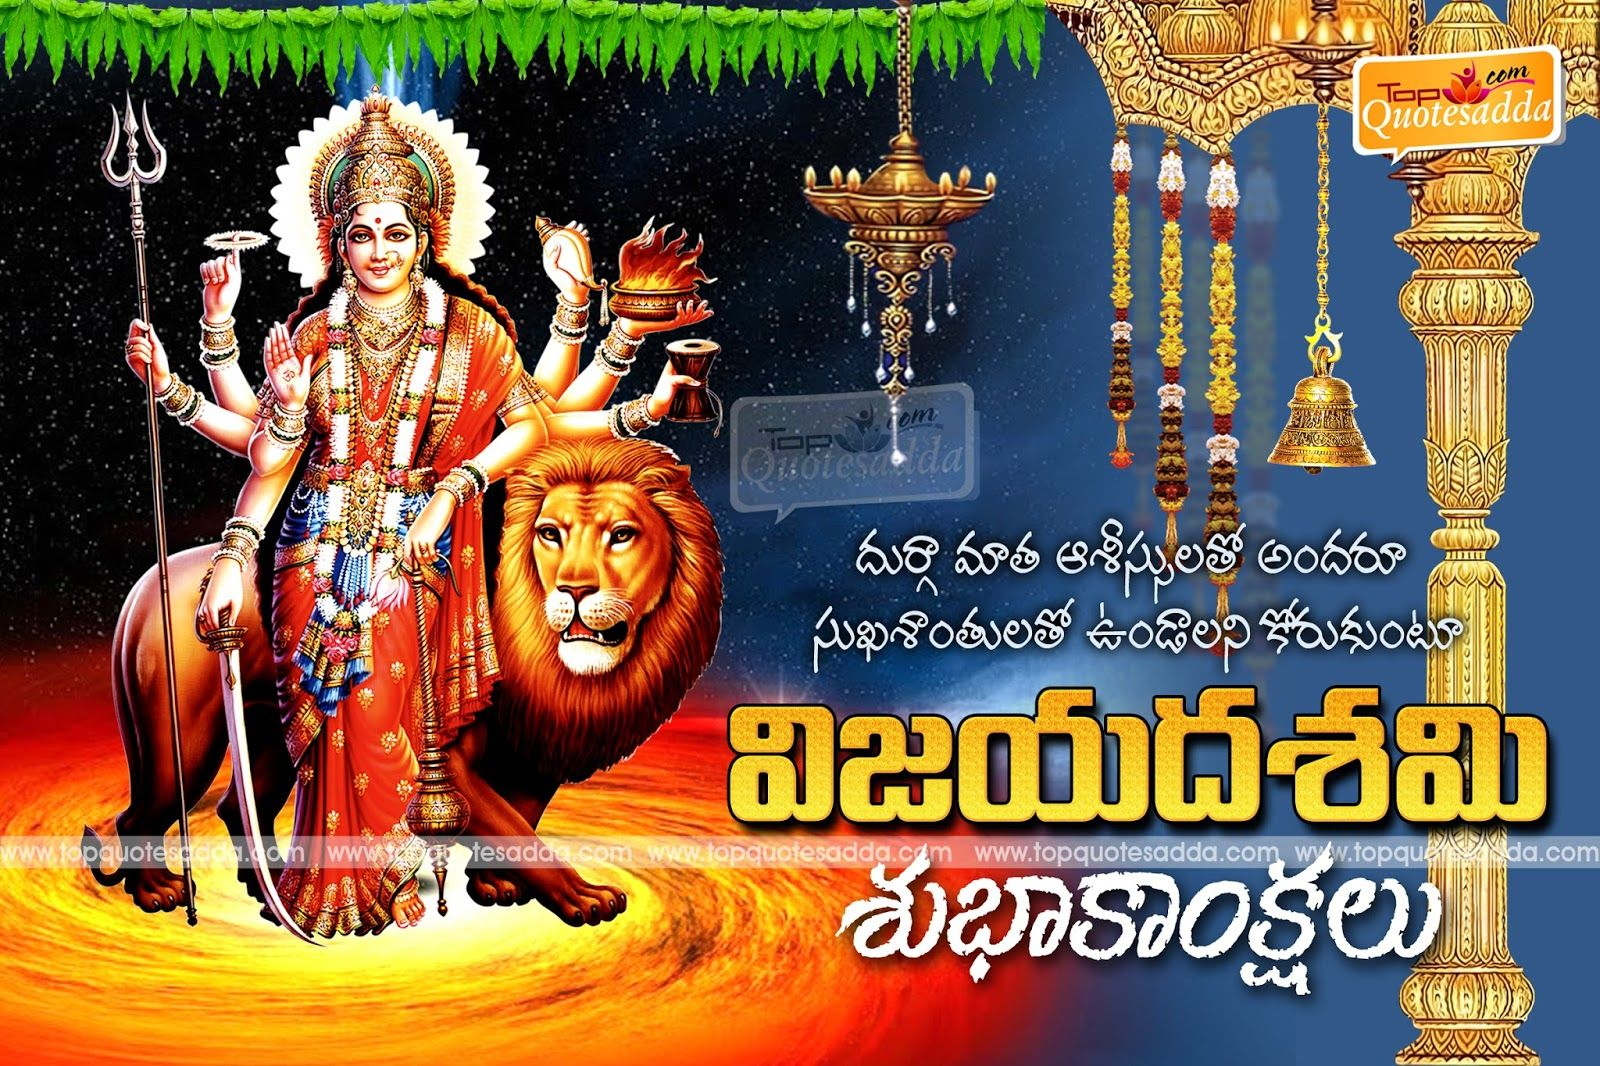 Happy dussehra vijaya dashami telugu wishes quotes topquotesaddag happy dussehra vijaya dashami telugu wishes quotes topquotesaddag 16001066 m4hsunfo